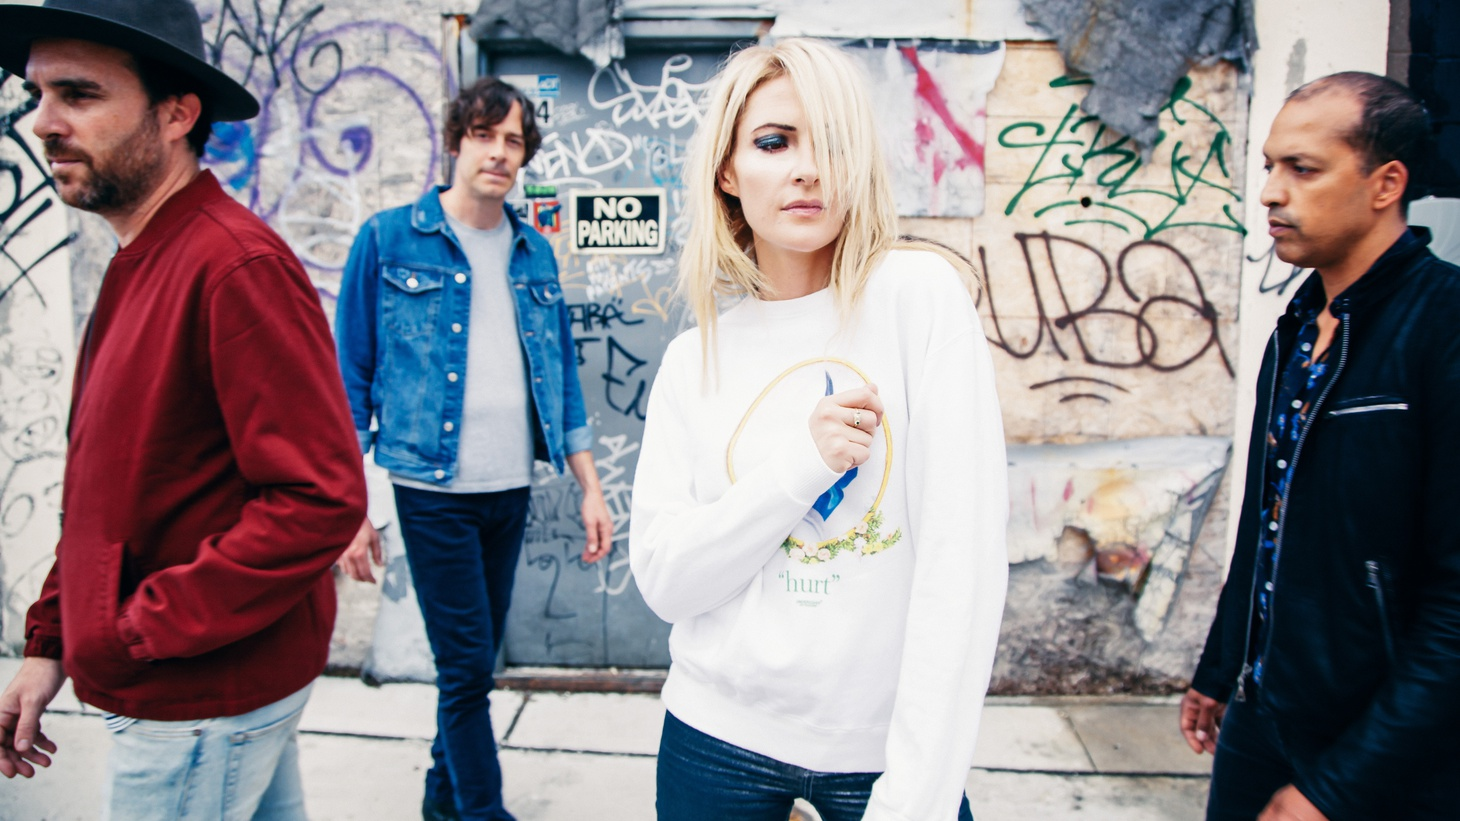 Celebrating their 20th year as a band, Metric's latest album Art of Doubt brings their guitar laden songs back to the forefront. They powered through a raucous set at Apogee Studios where we recorded this session with them earlier this month.